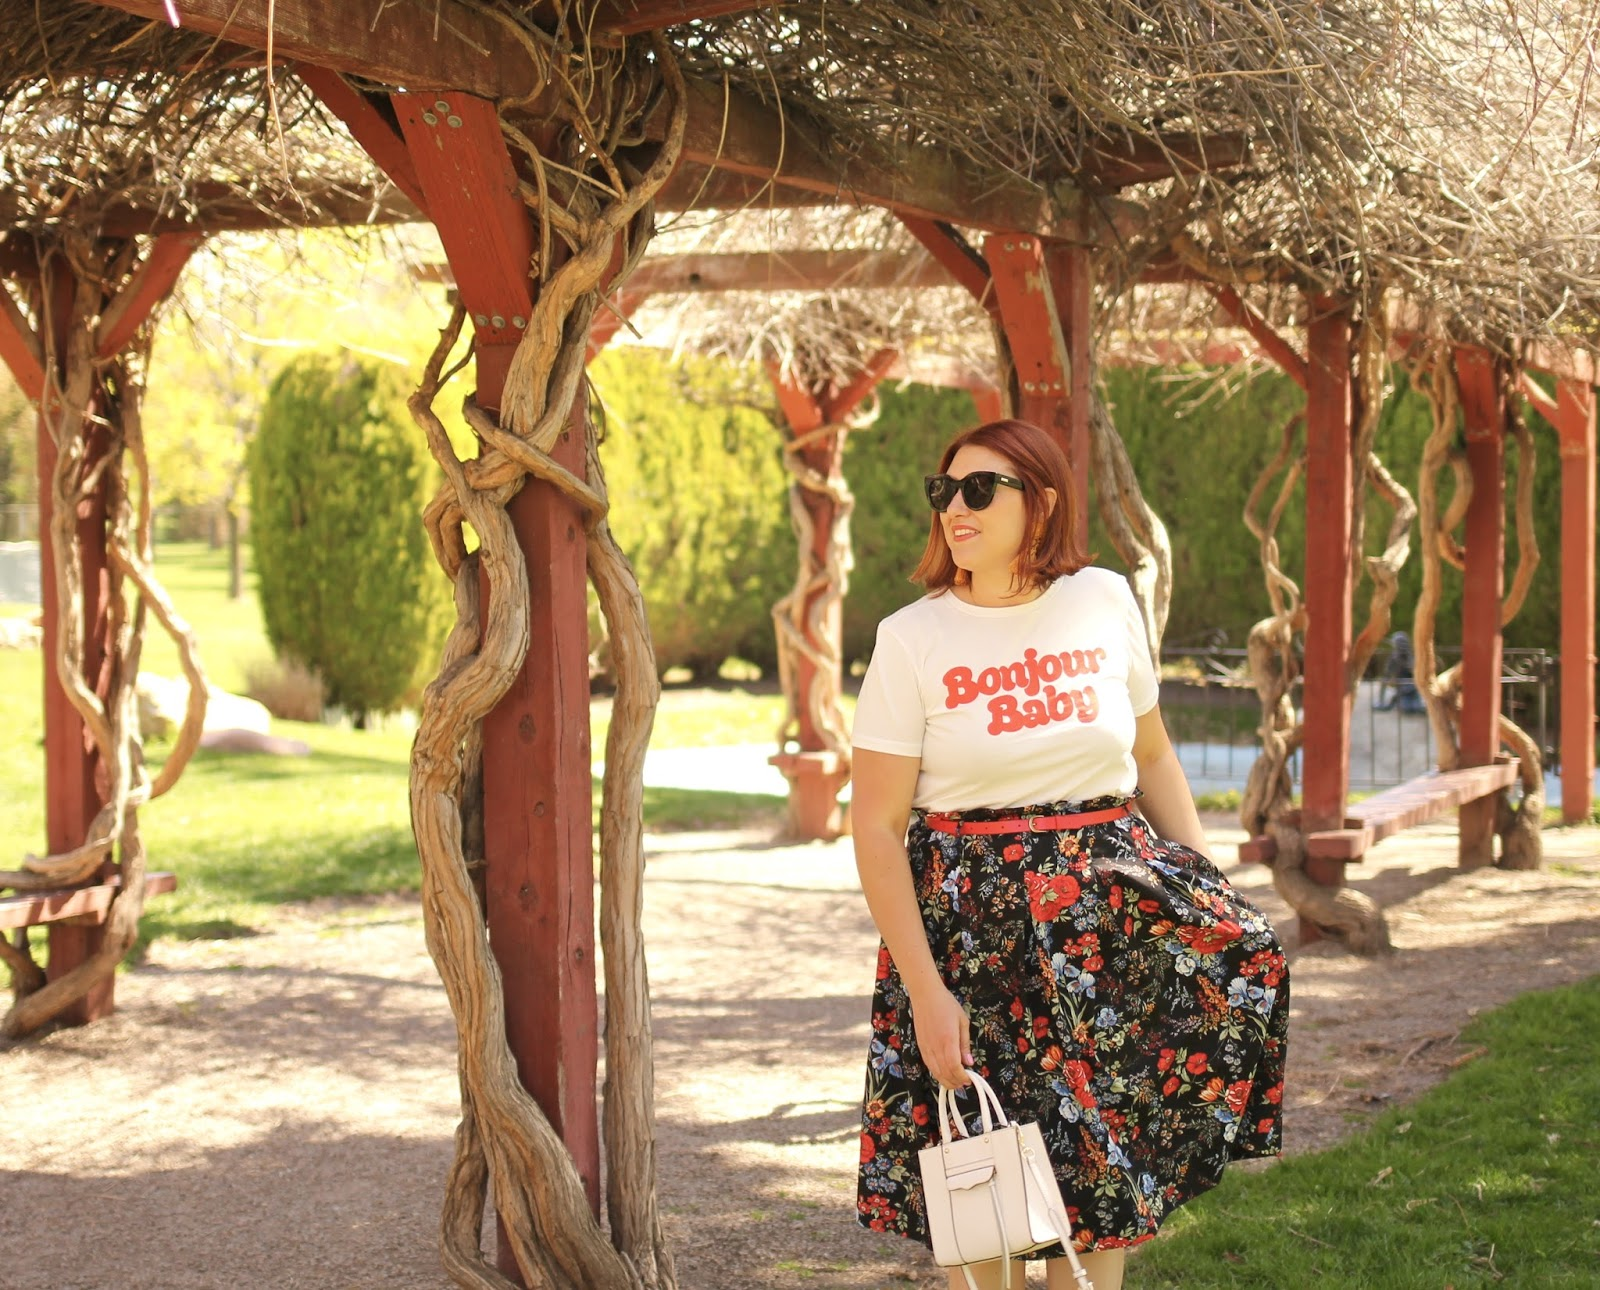 Floral midid skirt, paper bag skirt, red hair bob, graphic tee,  red flats, international peace gardens, rebecca Minkoff mini mab tote